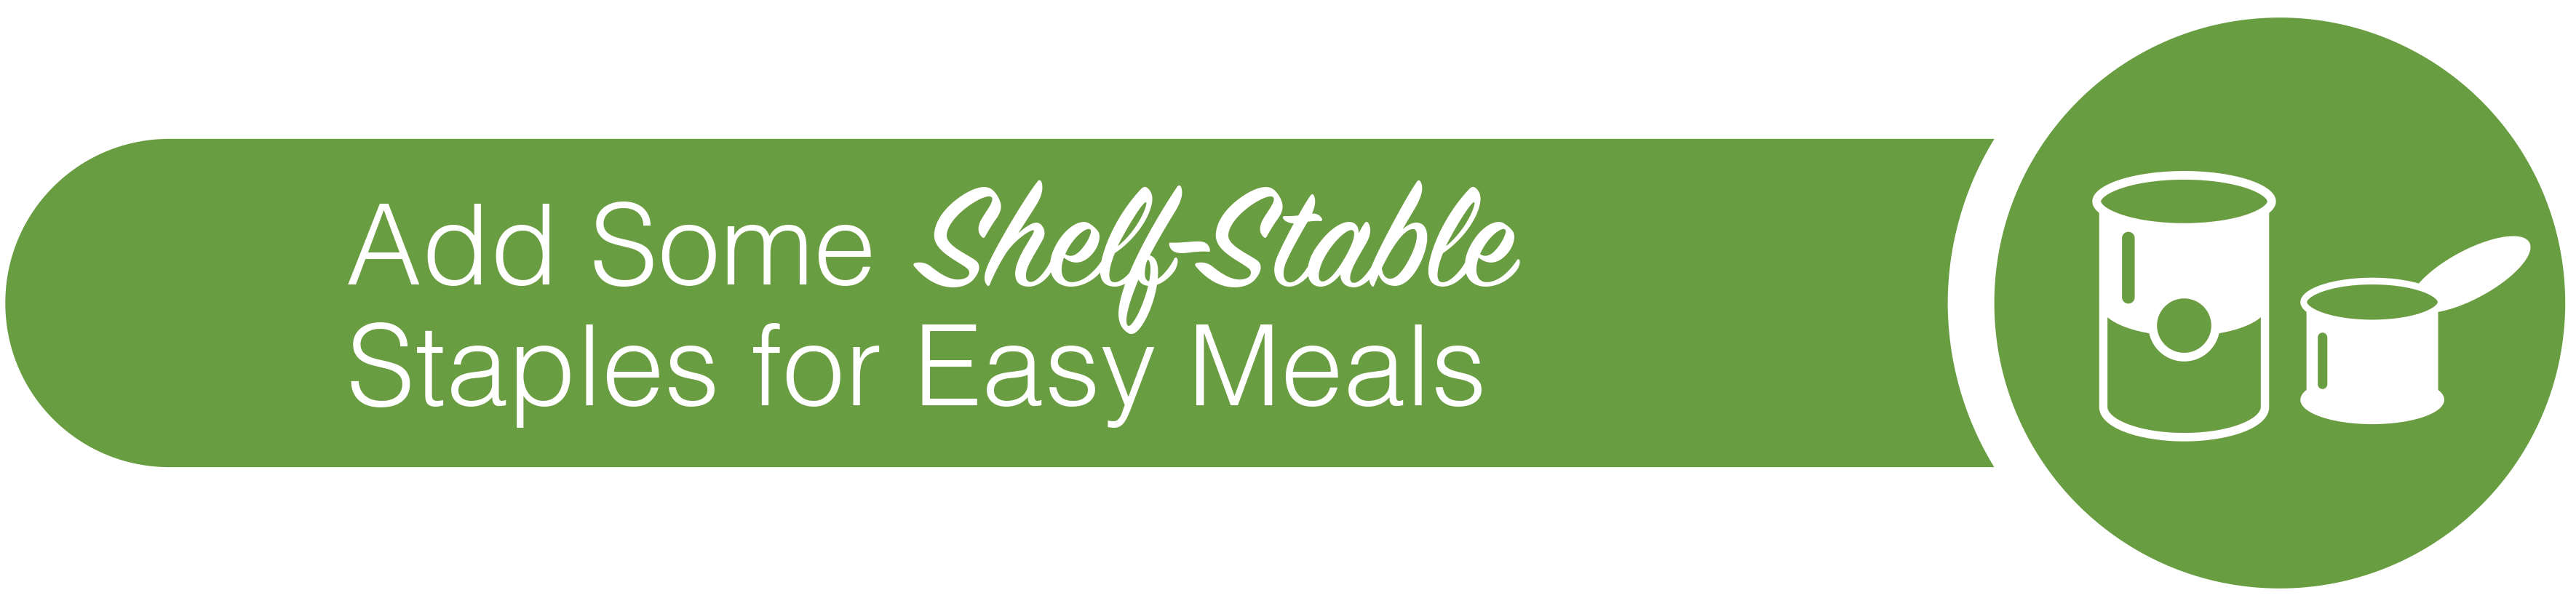 1119-KitchenClean-Up-Blog-Shelf-Stable